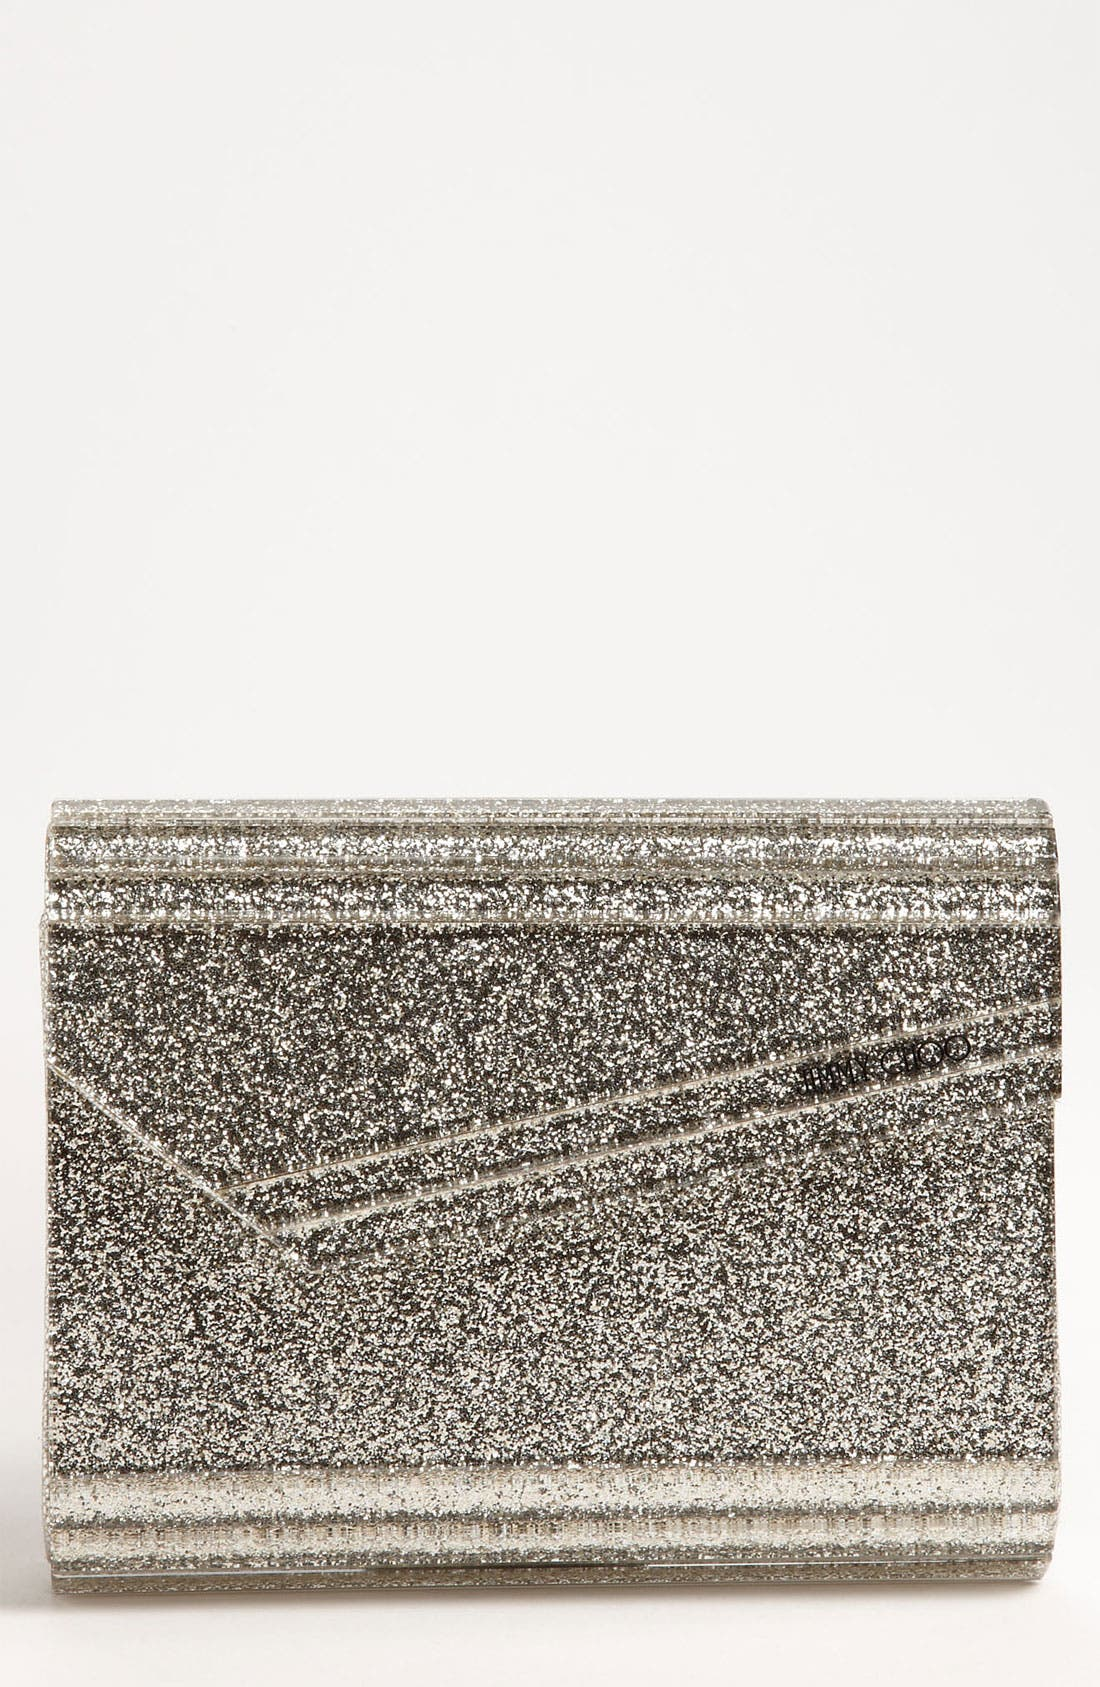 Alternate Image 1 Selected - Jimmy Choo 'Candy - Glitter' Clutch